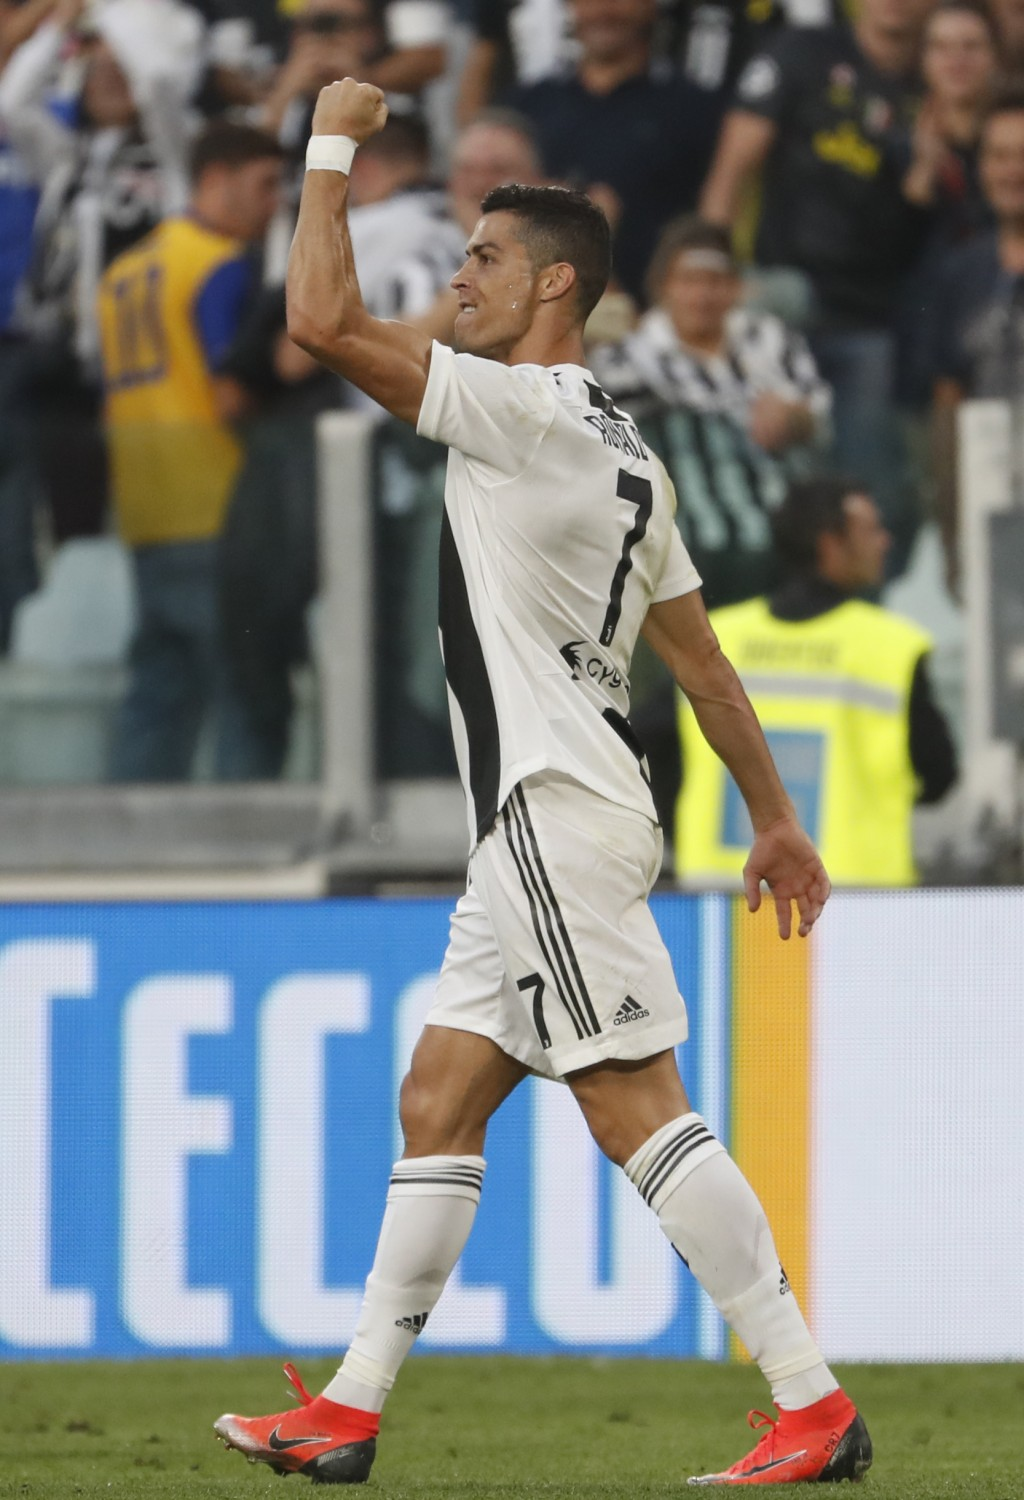 Juventus' Cristiano Ronaldo celebrates after scoring his team's first goal during an Italian Serie A soccer match between Juventus and Genoa, at the A...